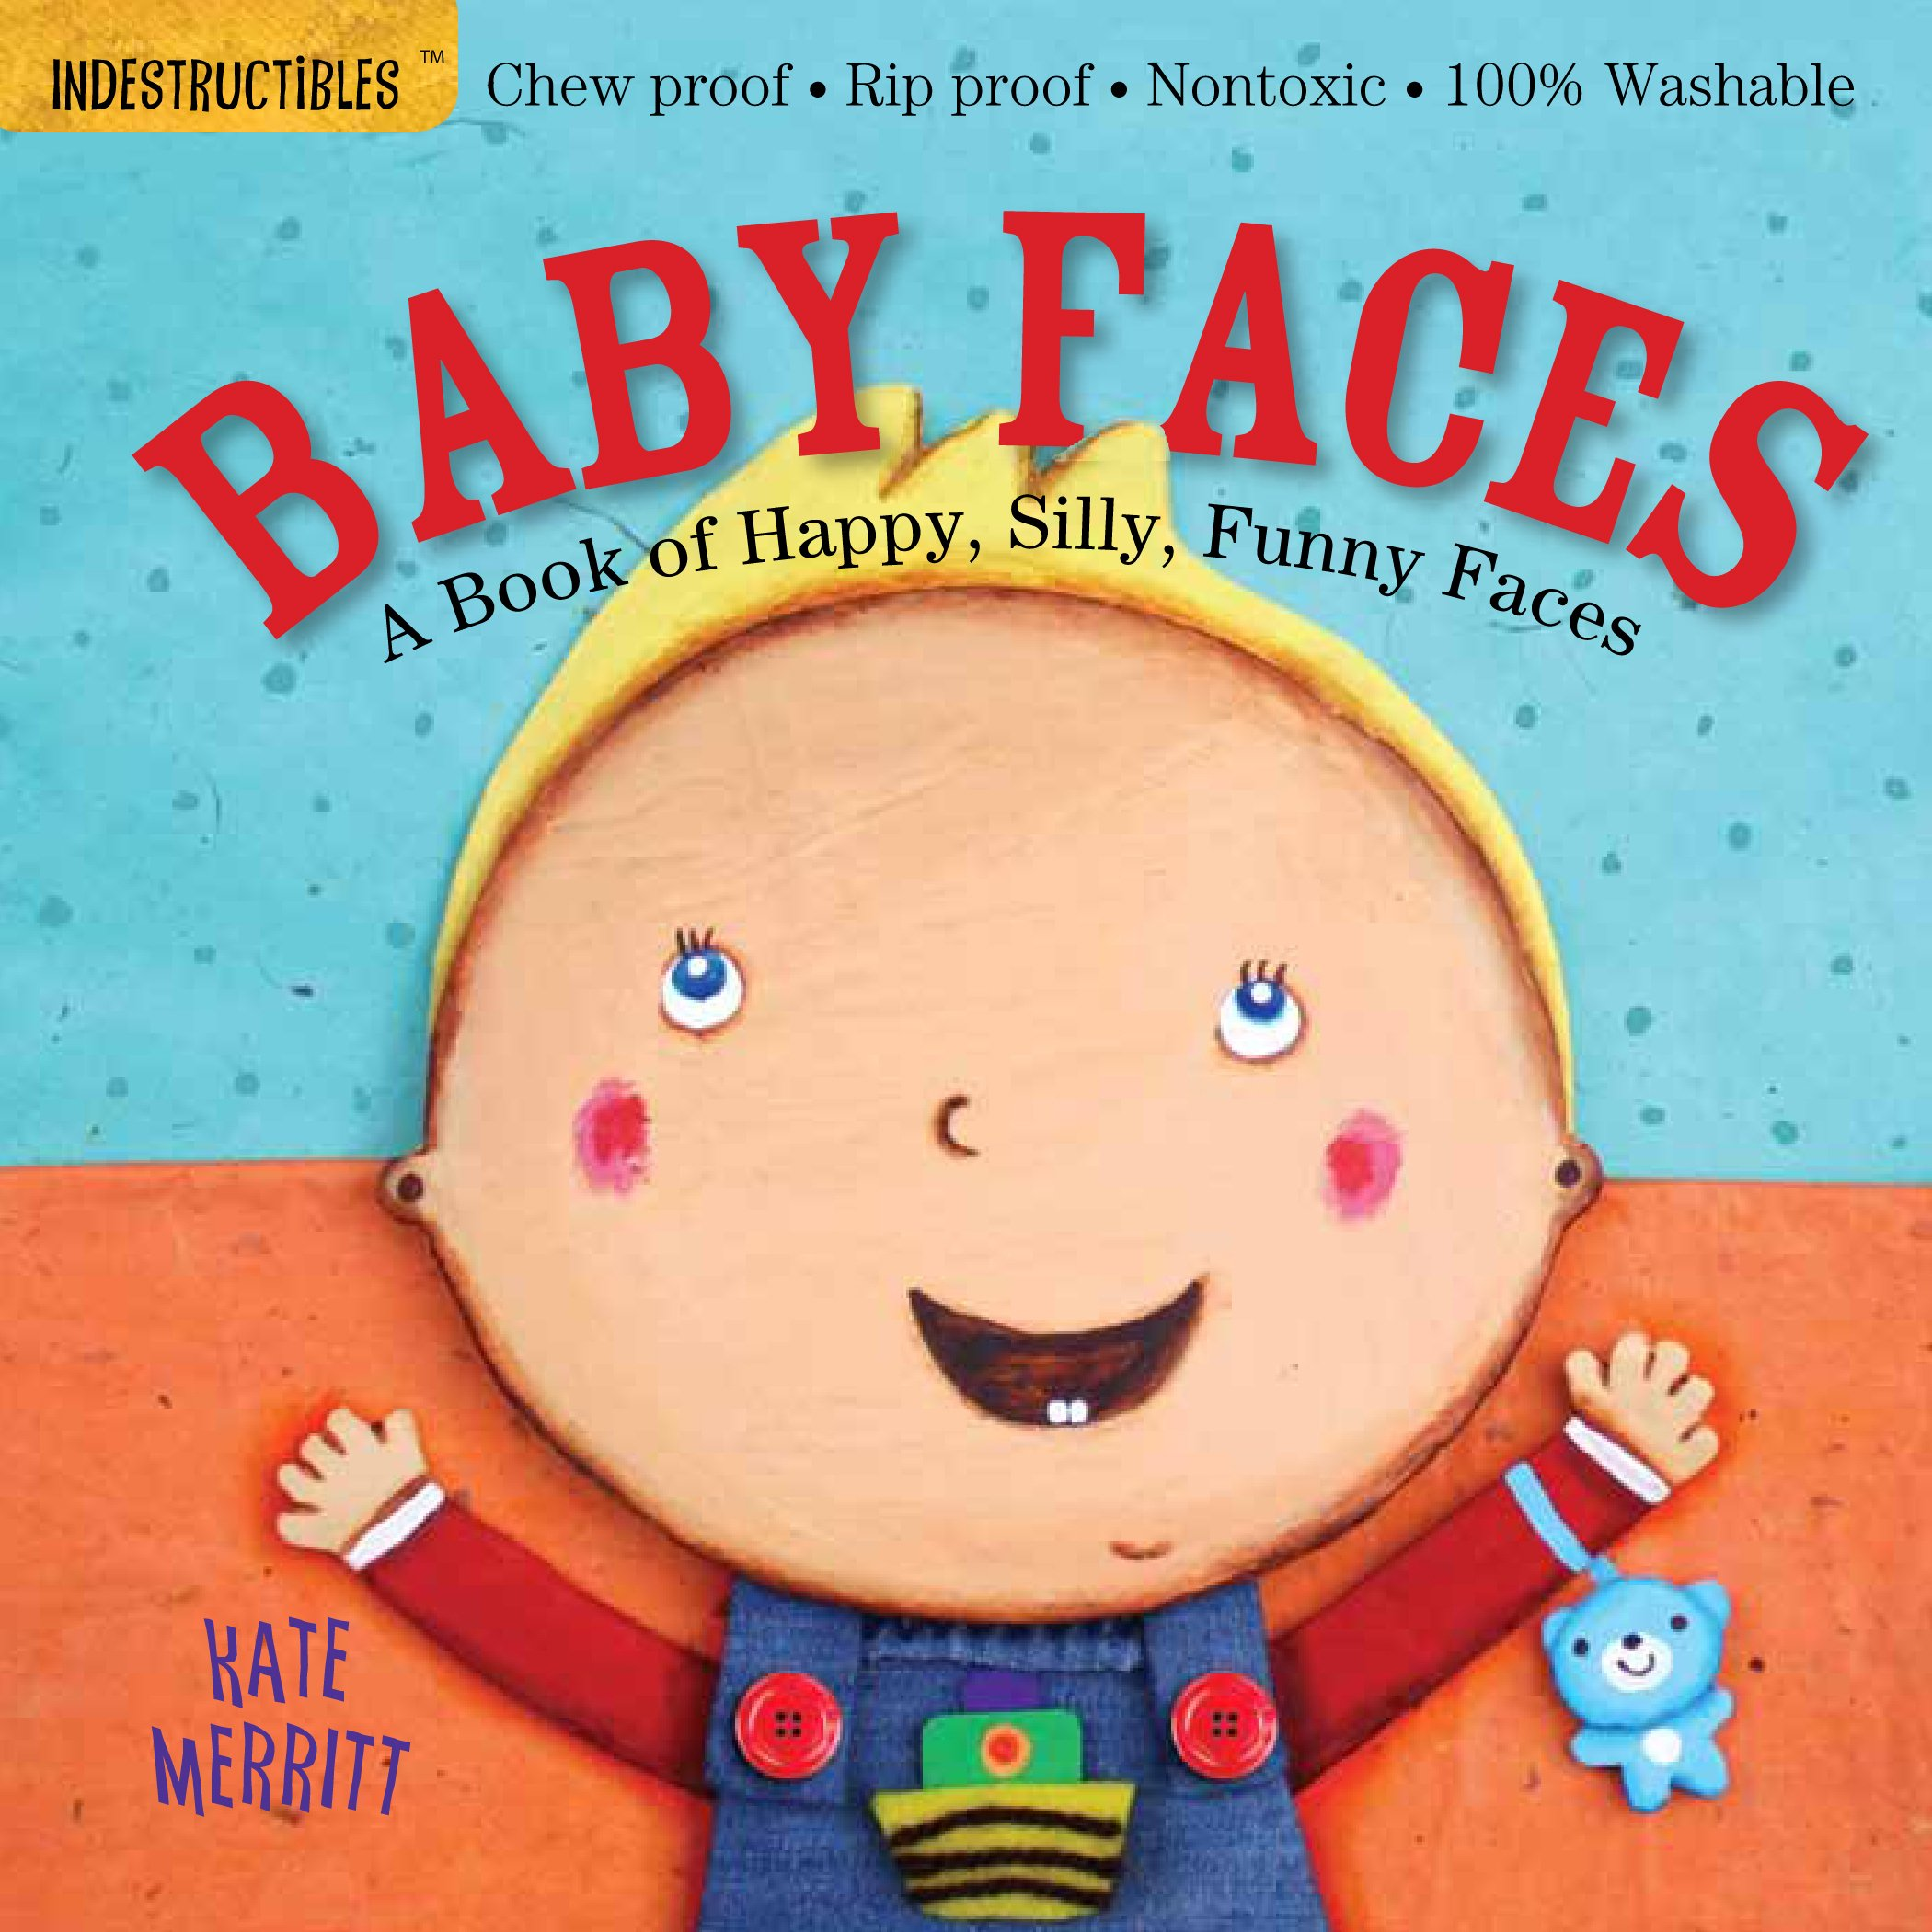 Amazon Indestructibles Baby Faces Amy